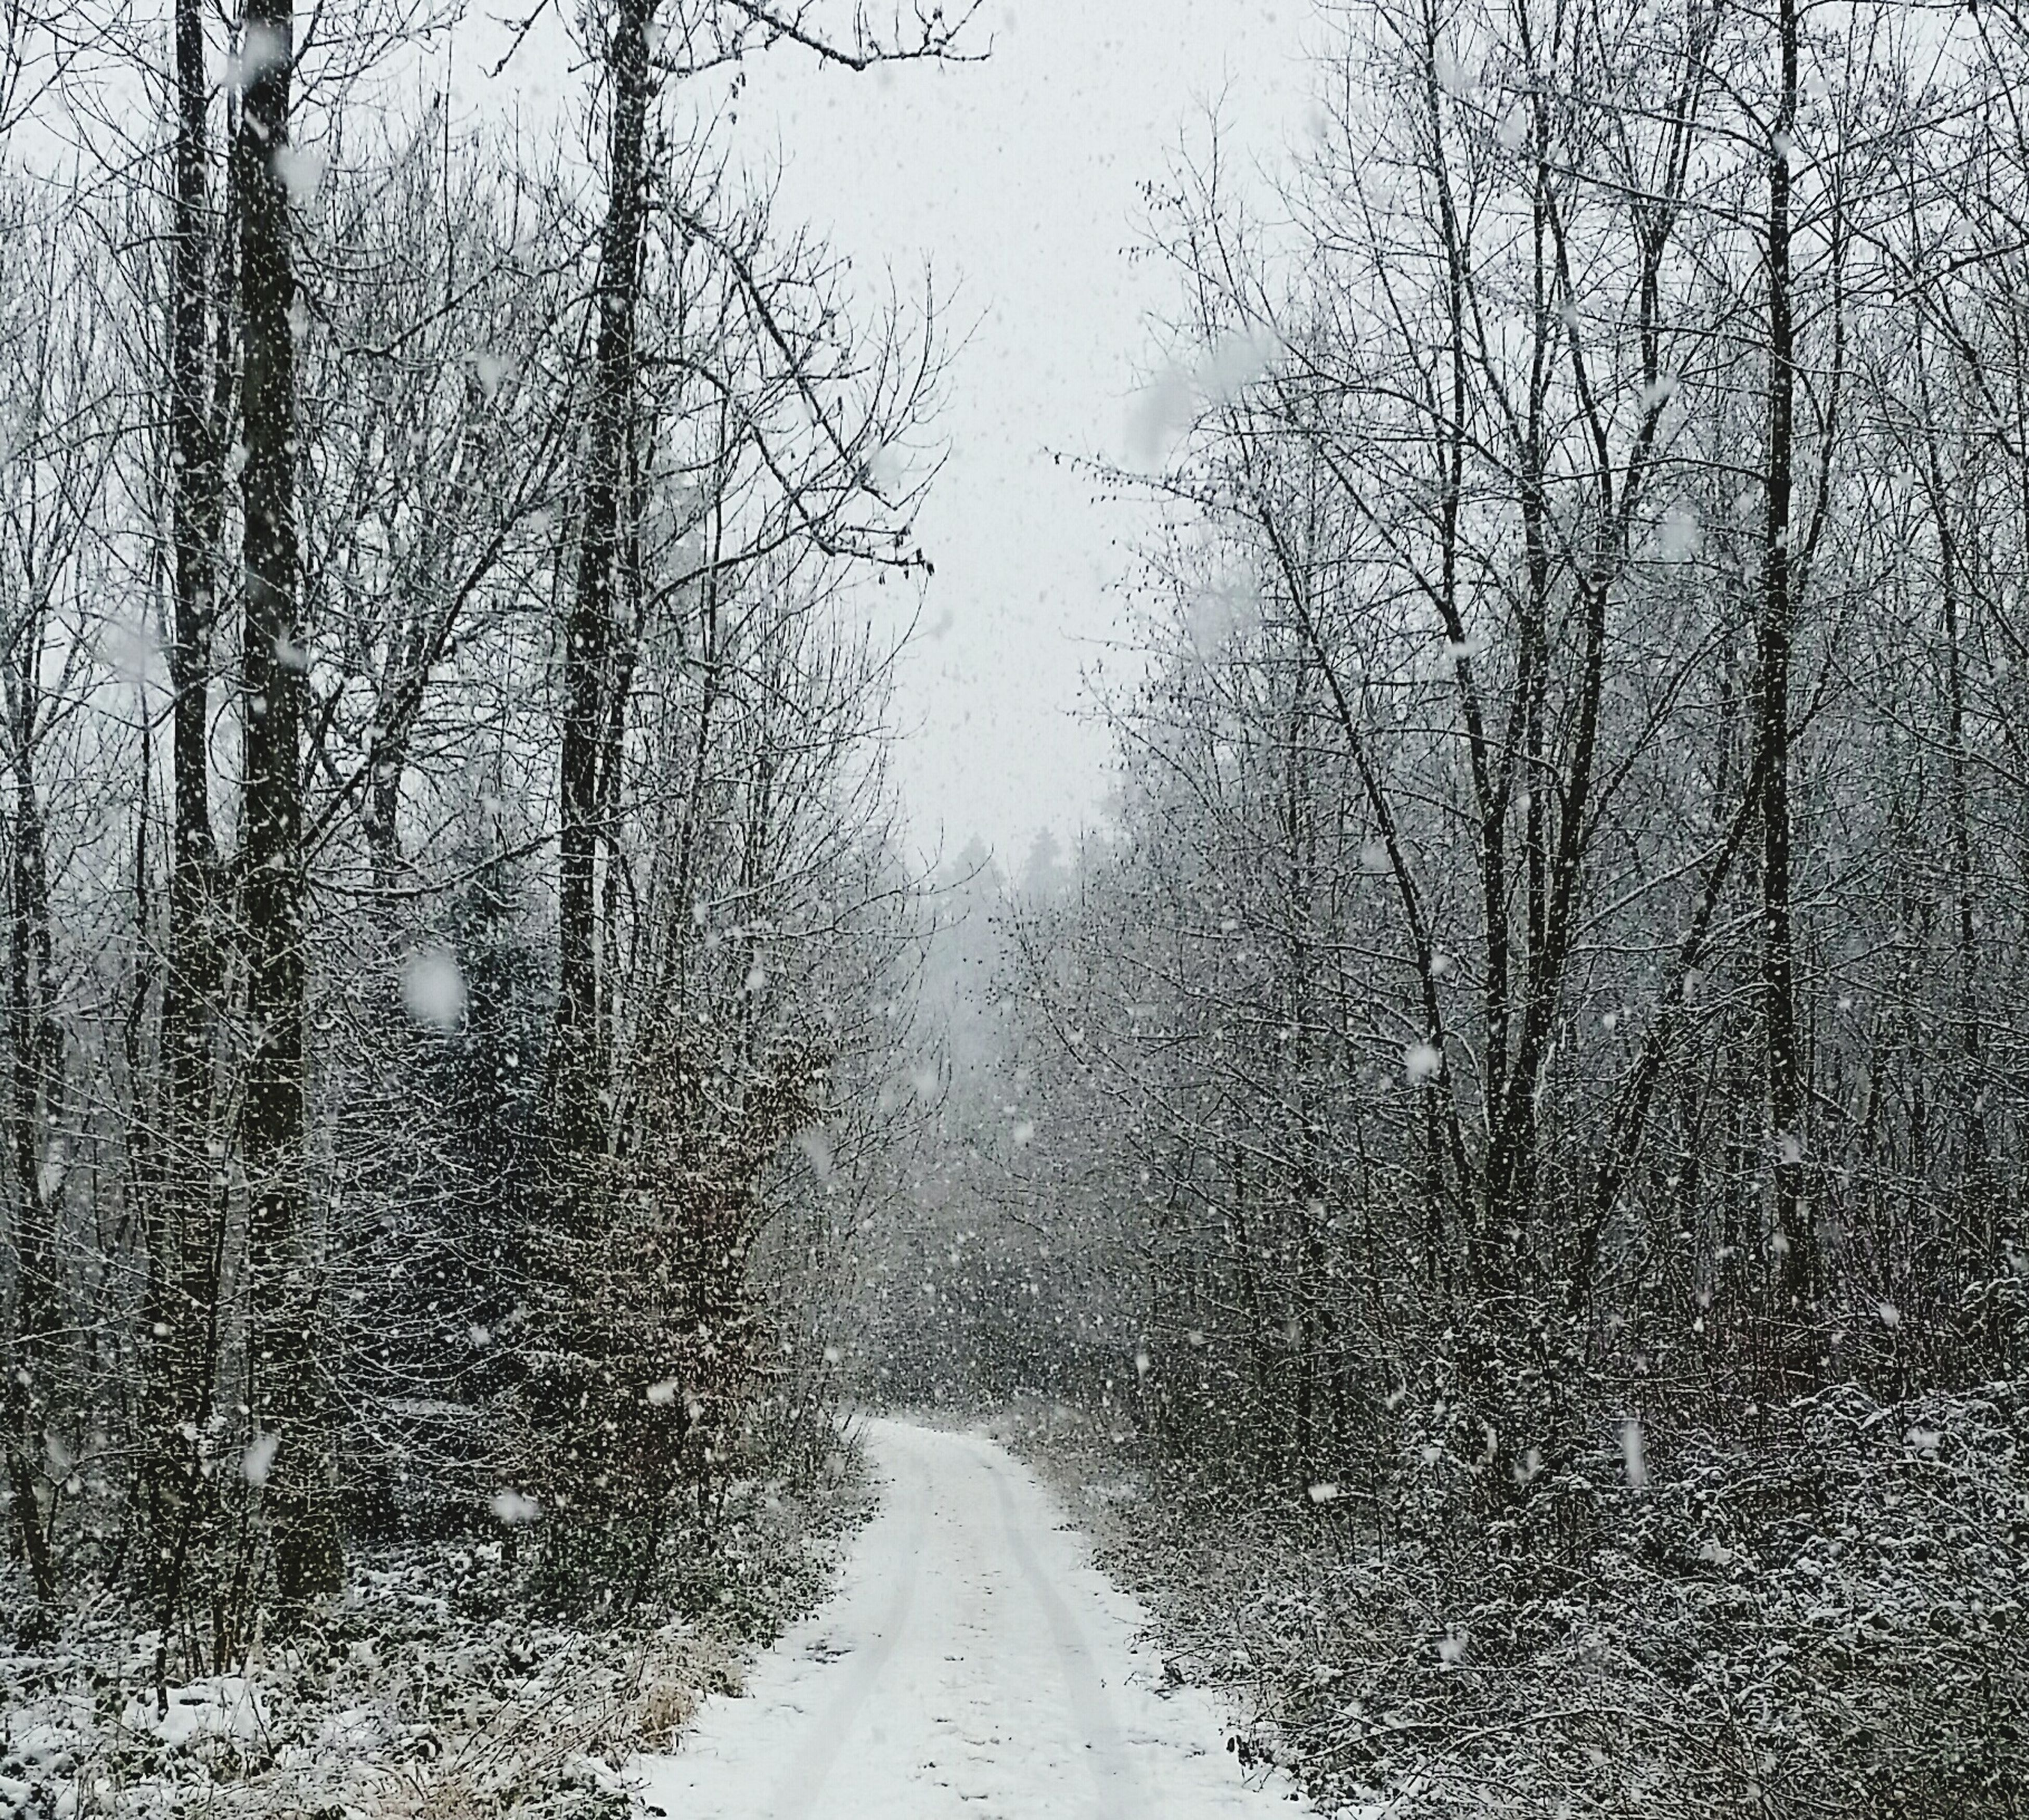 the way forward, weather, winter, diminishing perspective, transportation, tree, road, vanishing point, cold temperature, season, bare tree, snow, tranquility, fog, nature, tranquil scene, empty road, empty, scenics, day